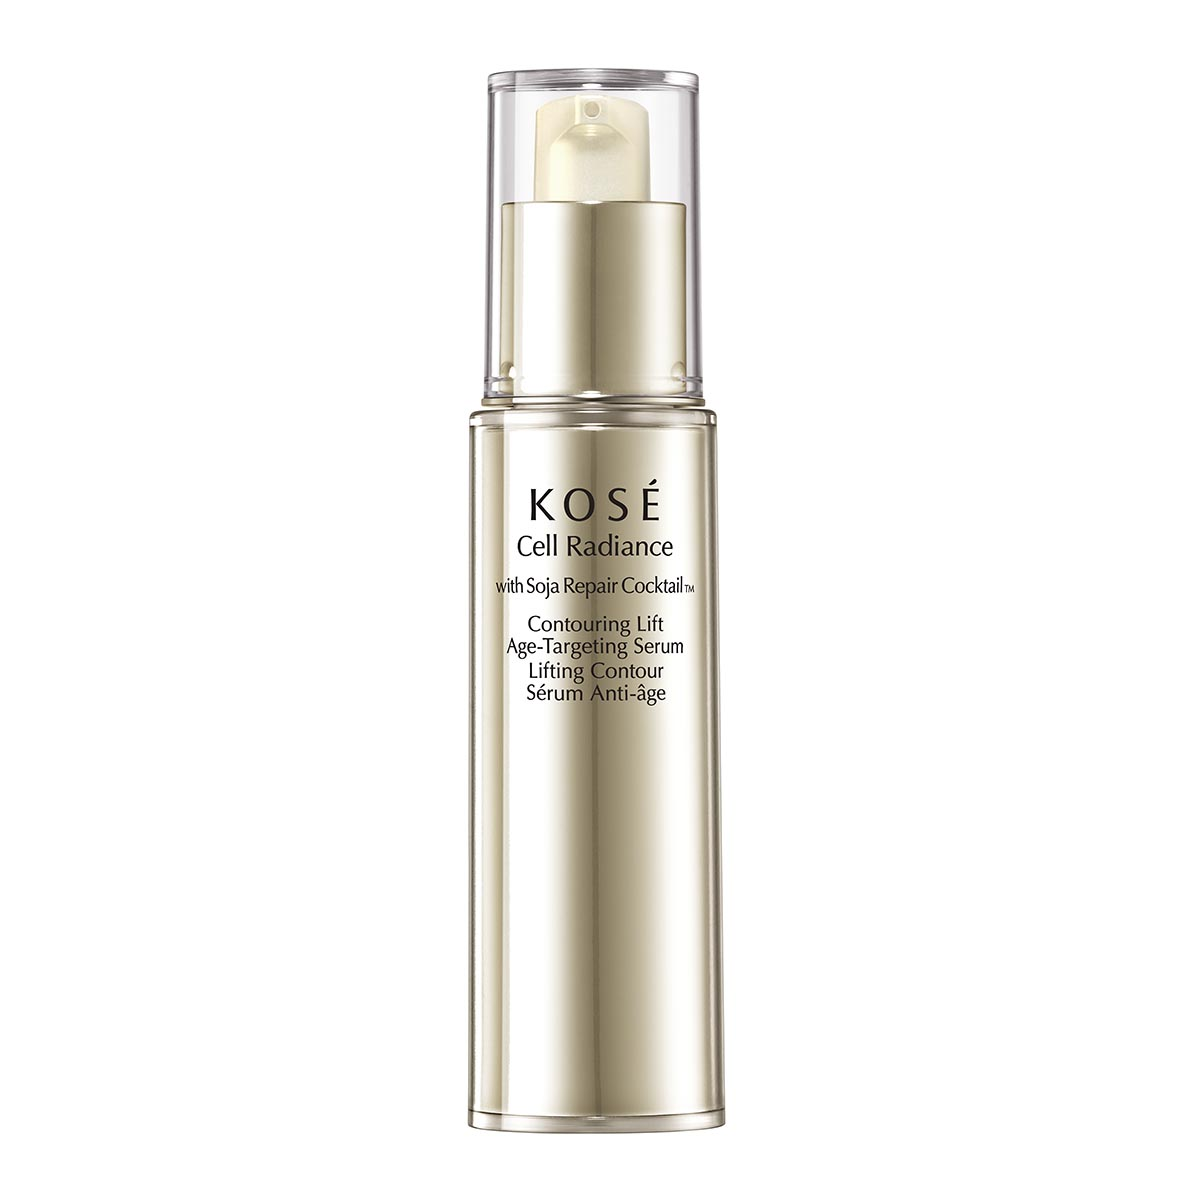 Kose cell radiance with soja repair cocktail tm contouring lift age targeting serum 30ml